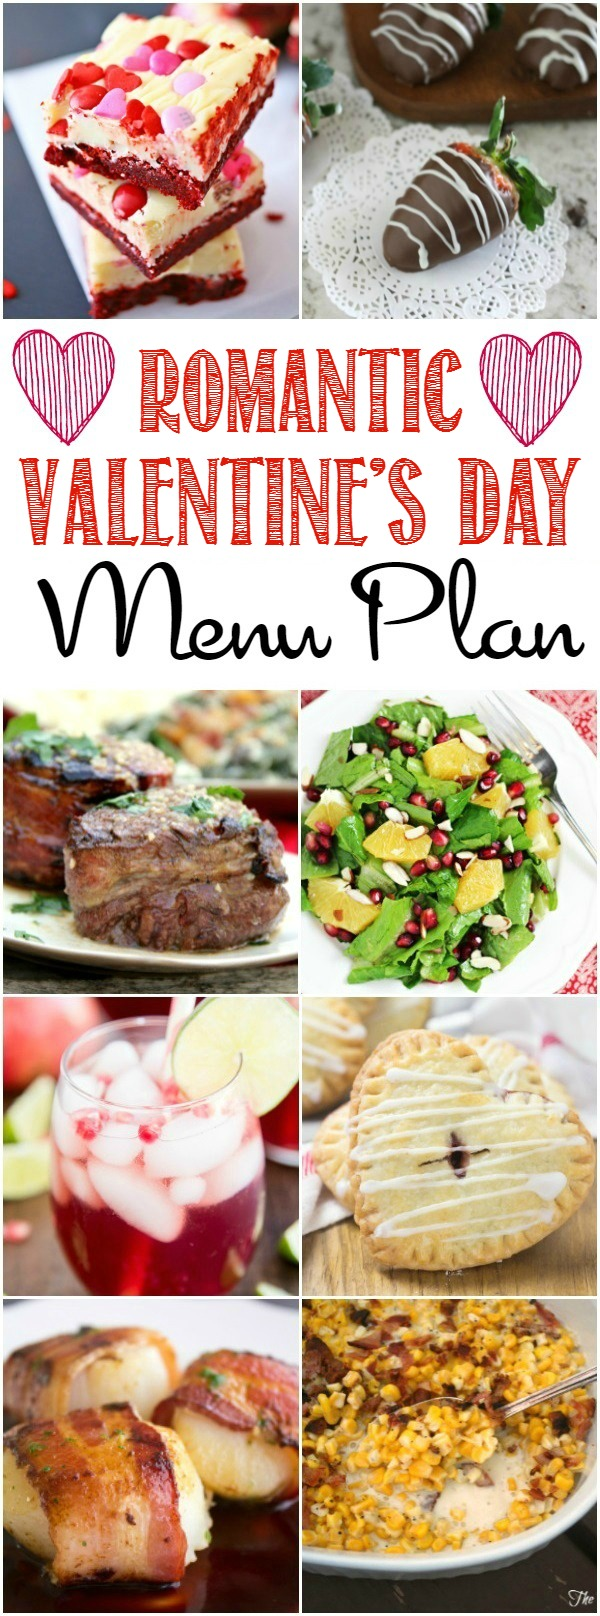 romantic valentine's day dinner at home menu plan ideas - home